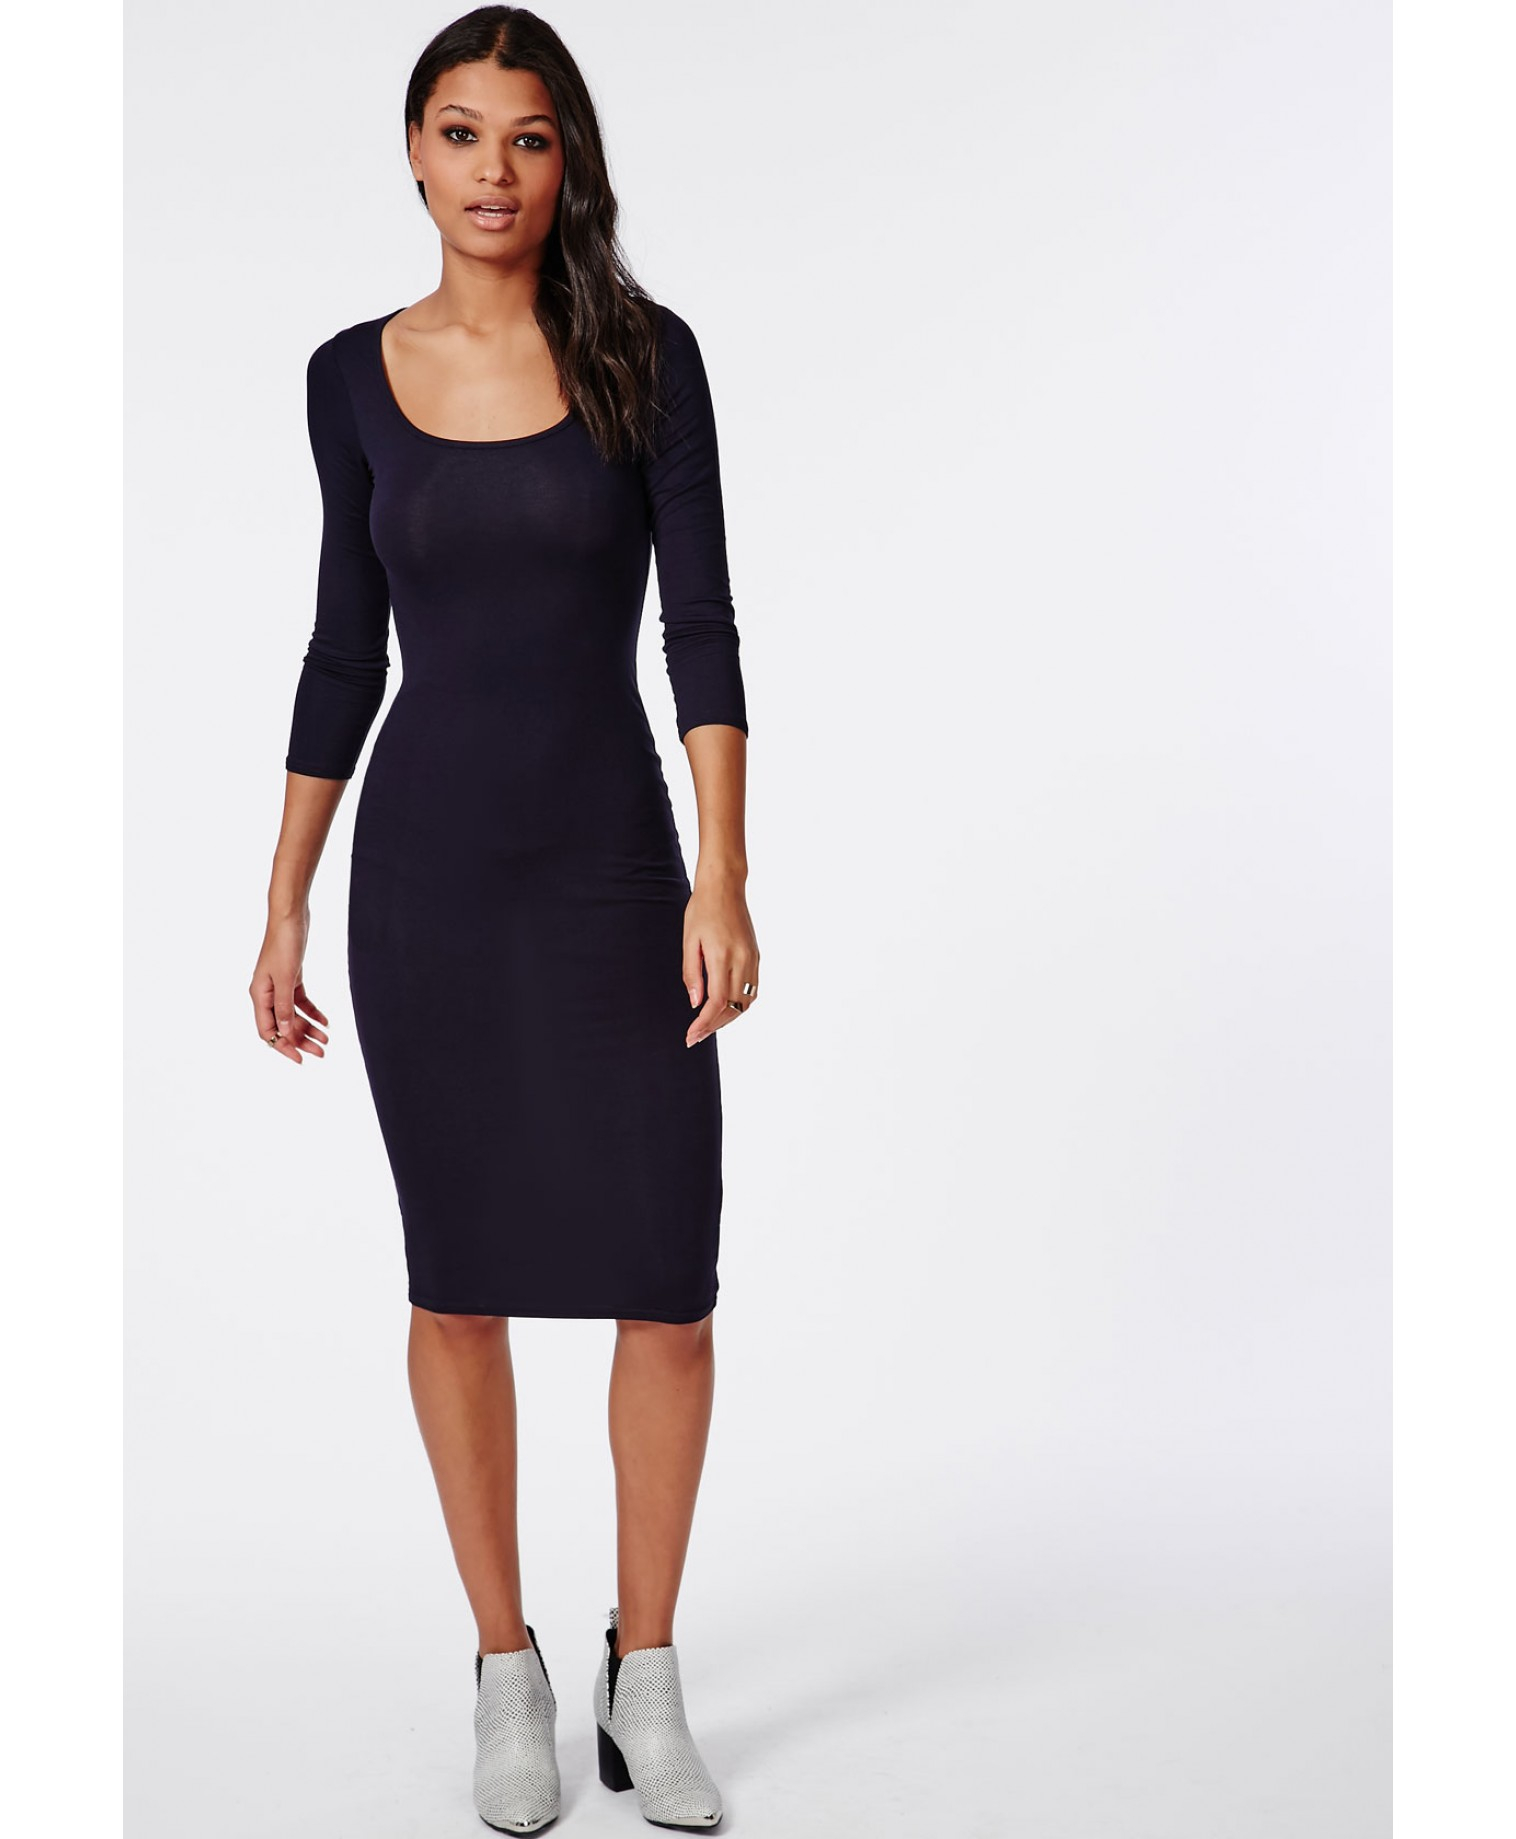 292e157ec26 scoop neck midi dress scoop neck midi dress ...